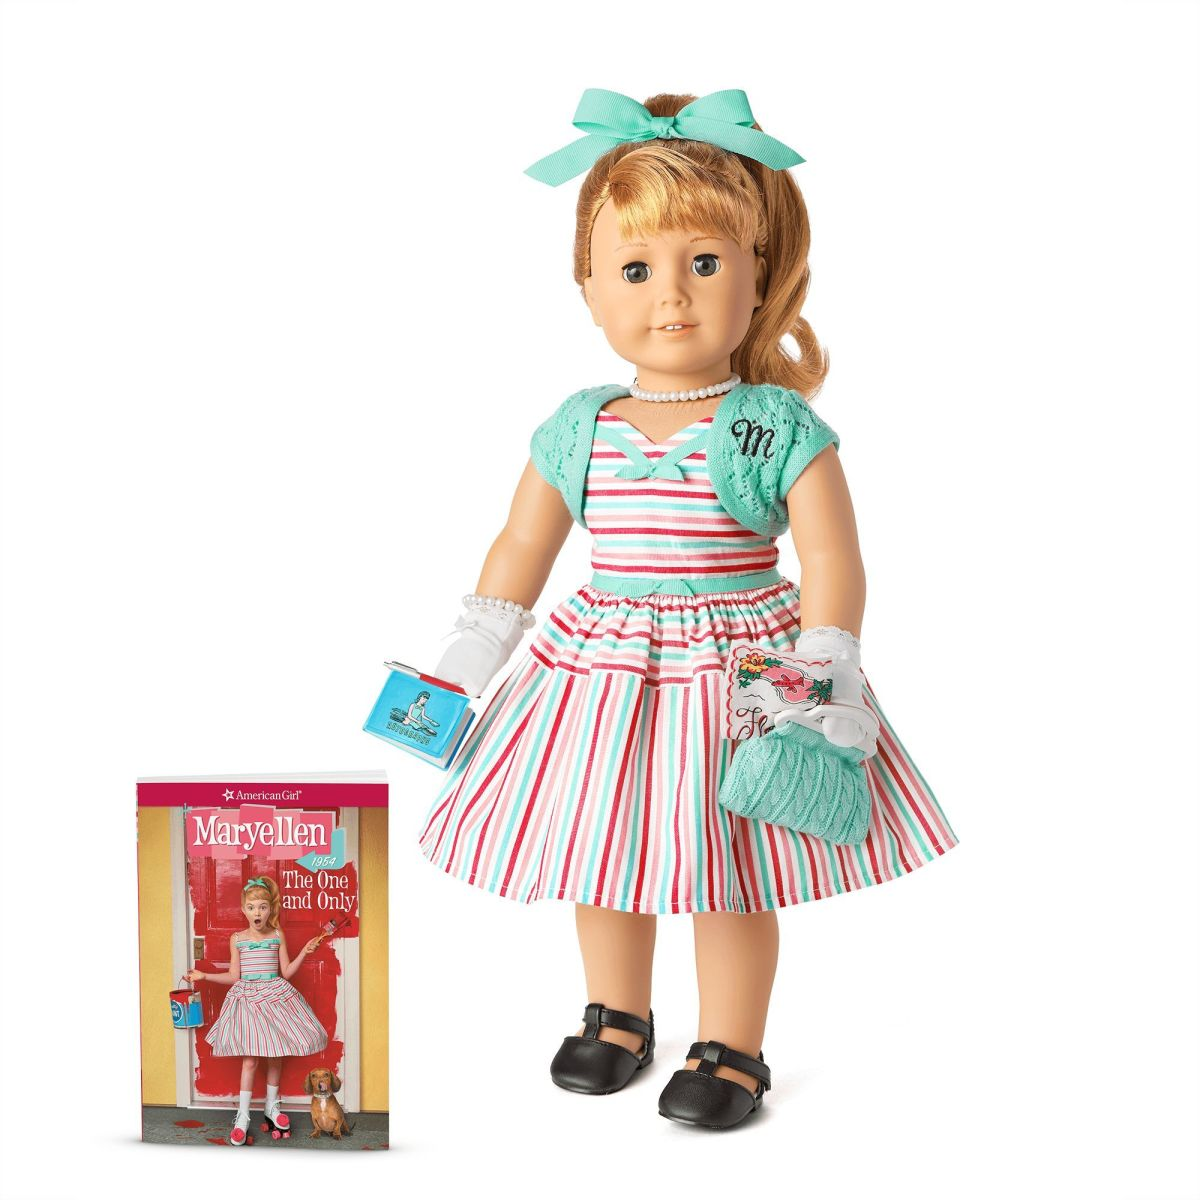 A Maryellen doll, pictured with the book Maryellen: The One and Only